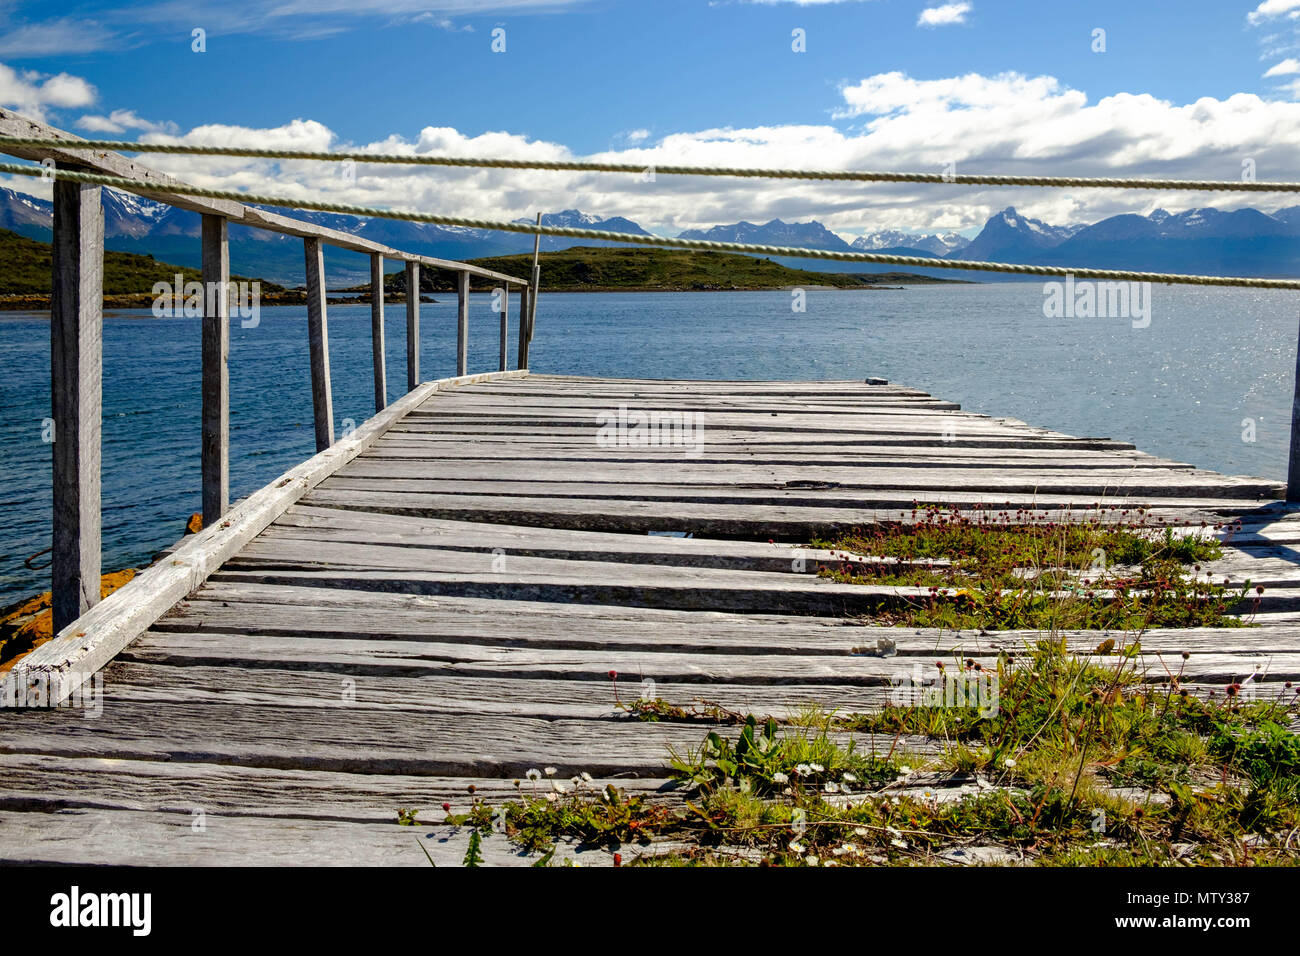 An old pier in Puerto Navarino shows the Beagle Channel and its surroundings. This part of Chile, Isla Navarino, is rather wild and adventurous. - Stock Image